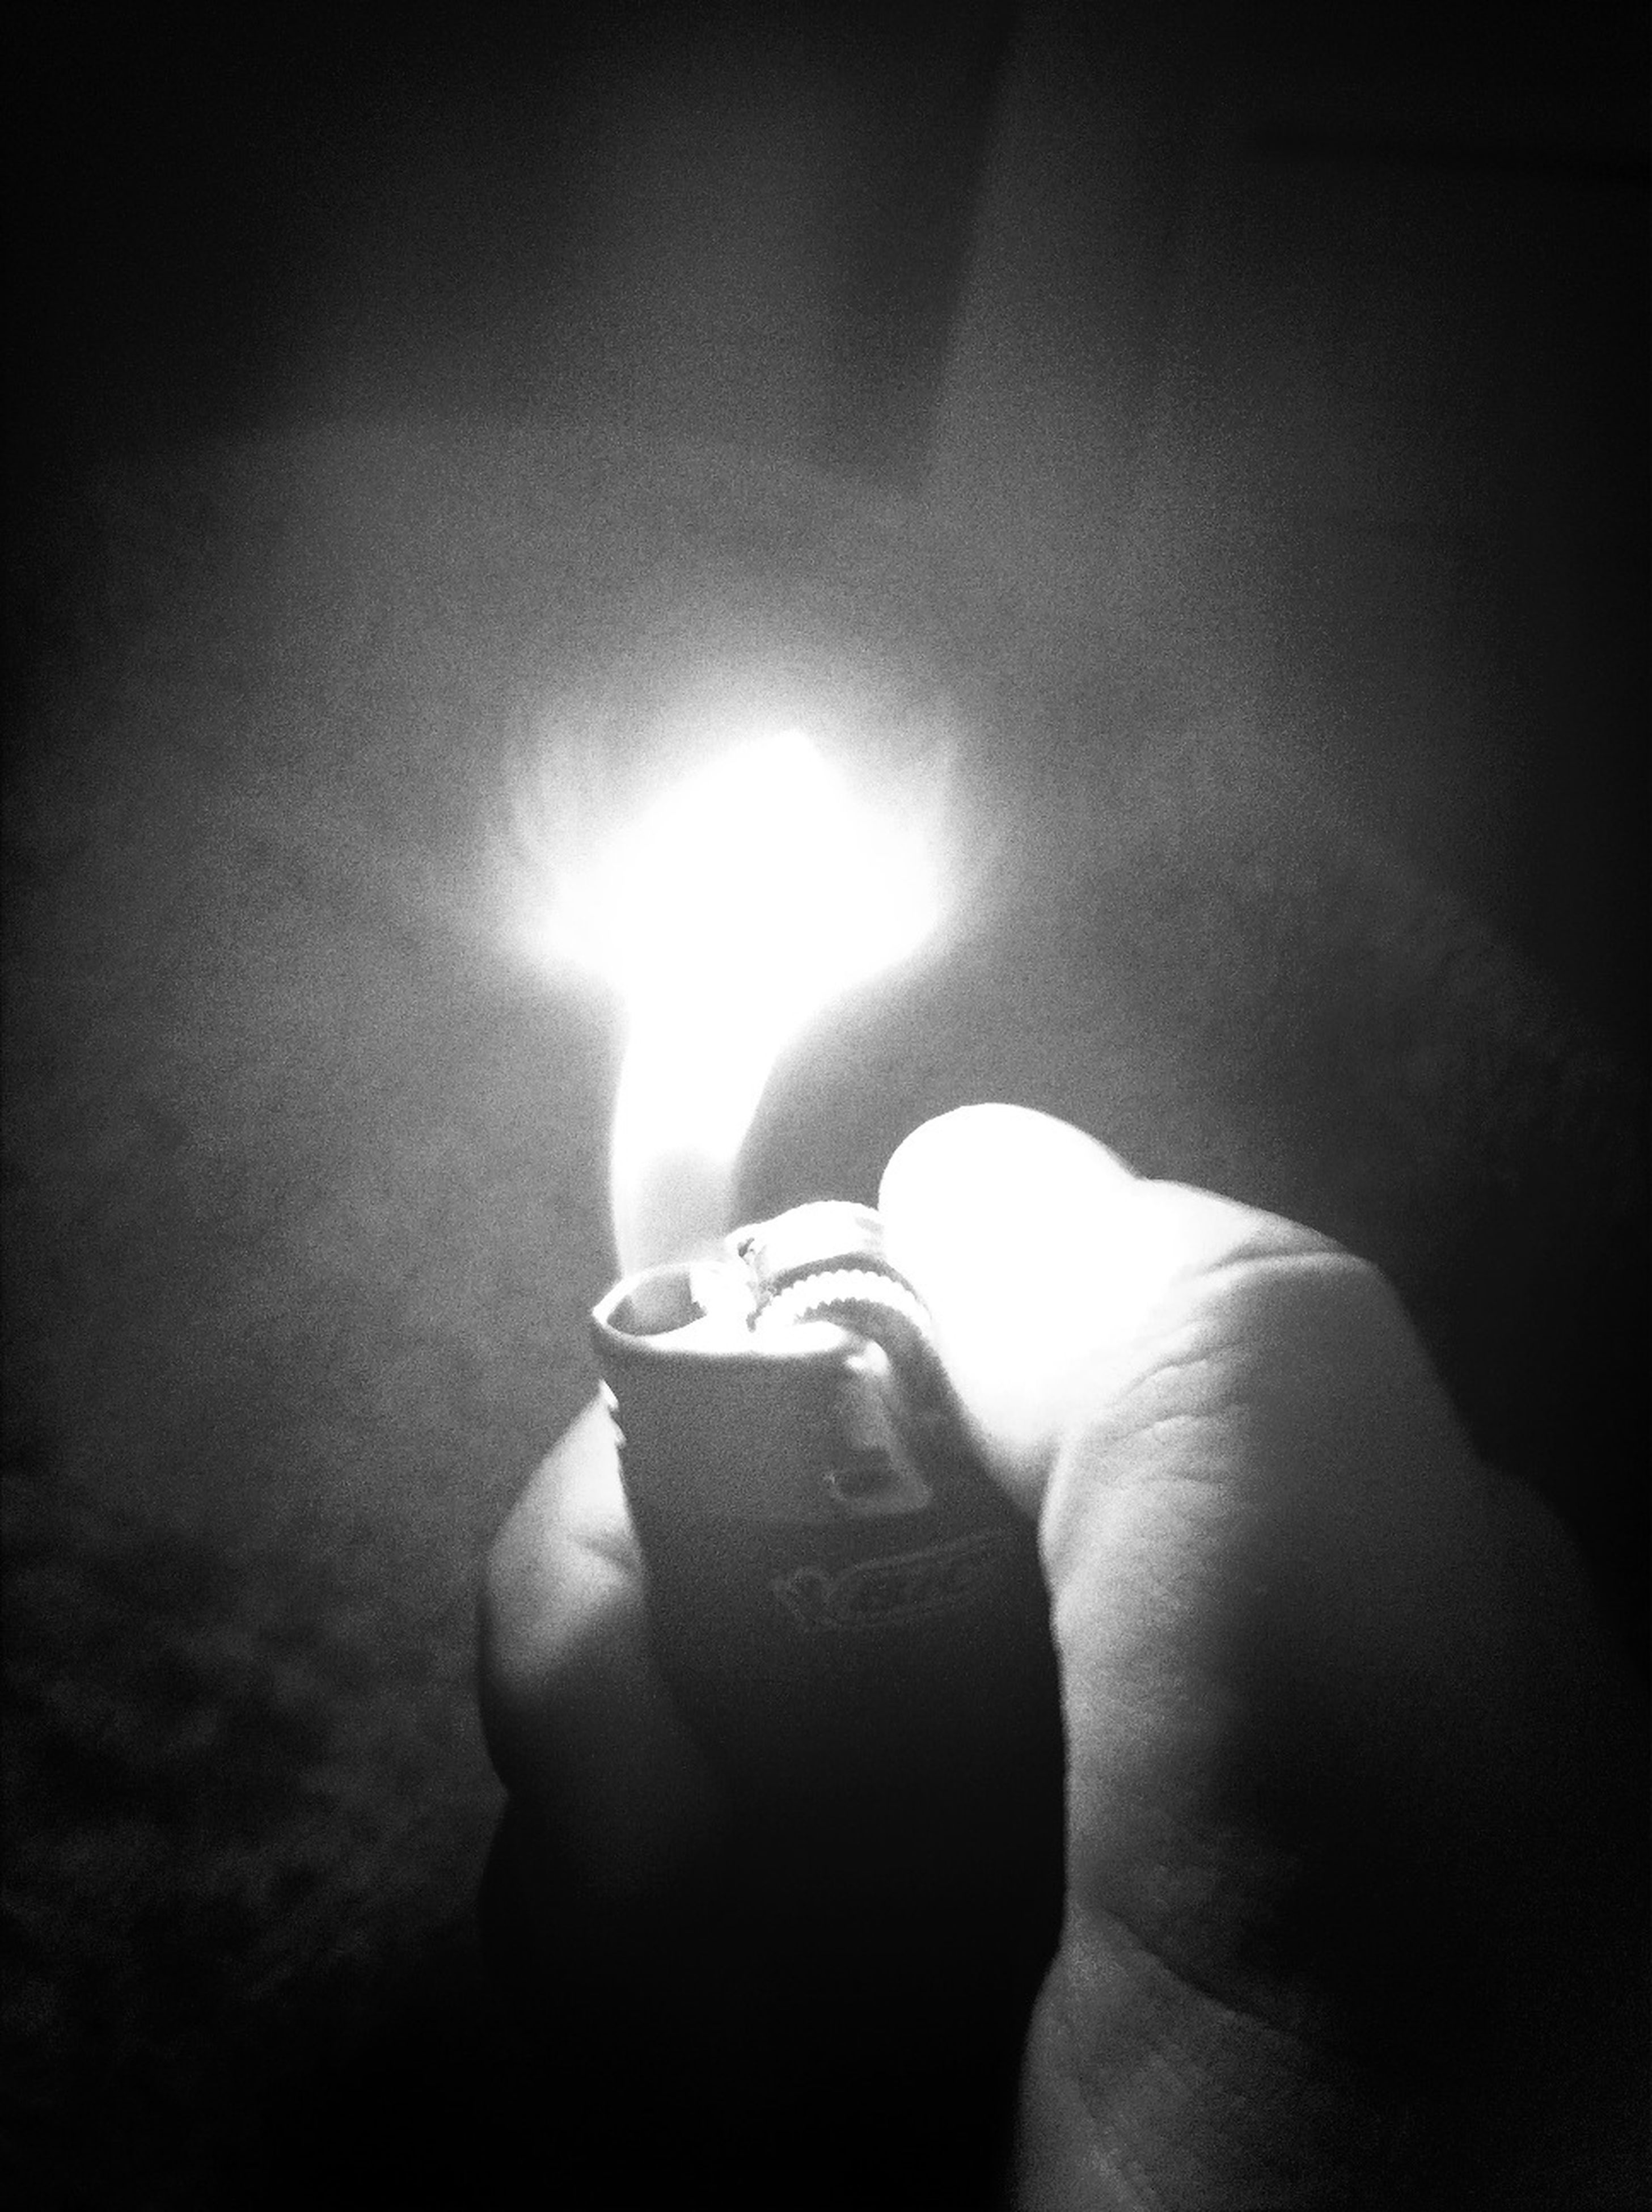 person, holding, indoors, lifestyles, leisure activity, men, part of, unrecognizable person, human finger, illuminated, glowing, night, close-up, dark, cropped